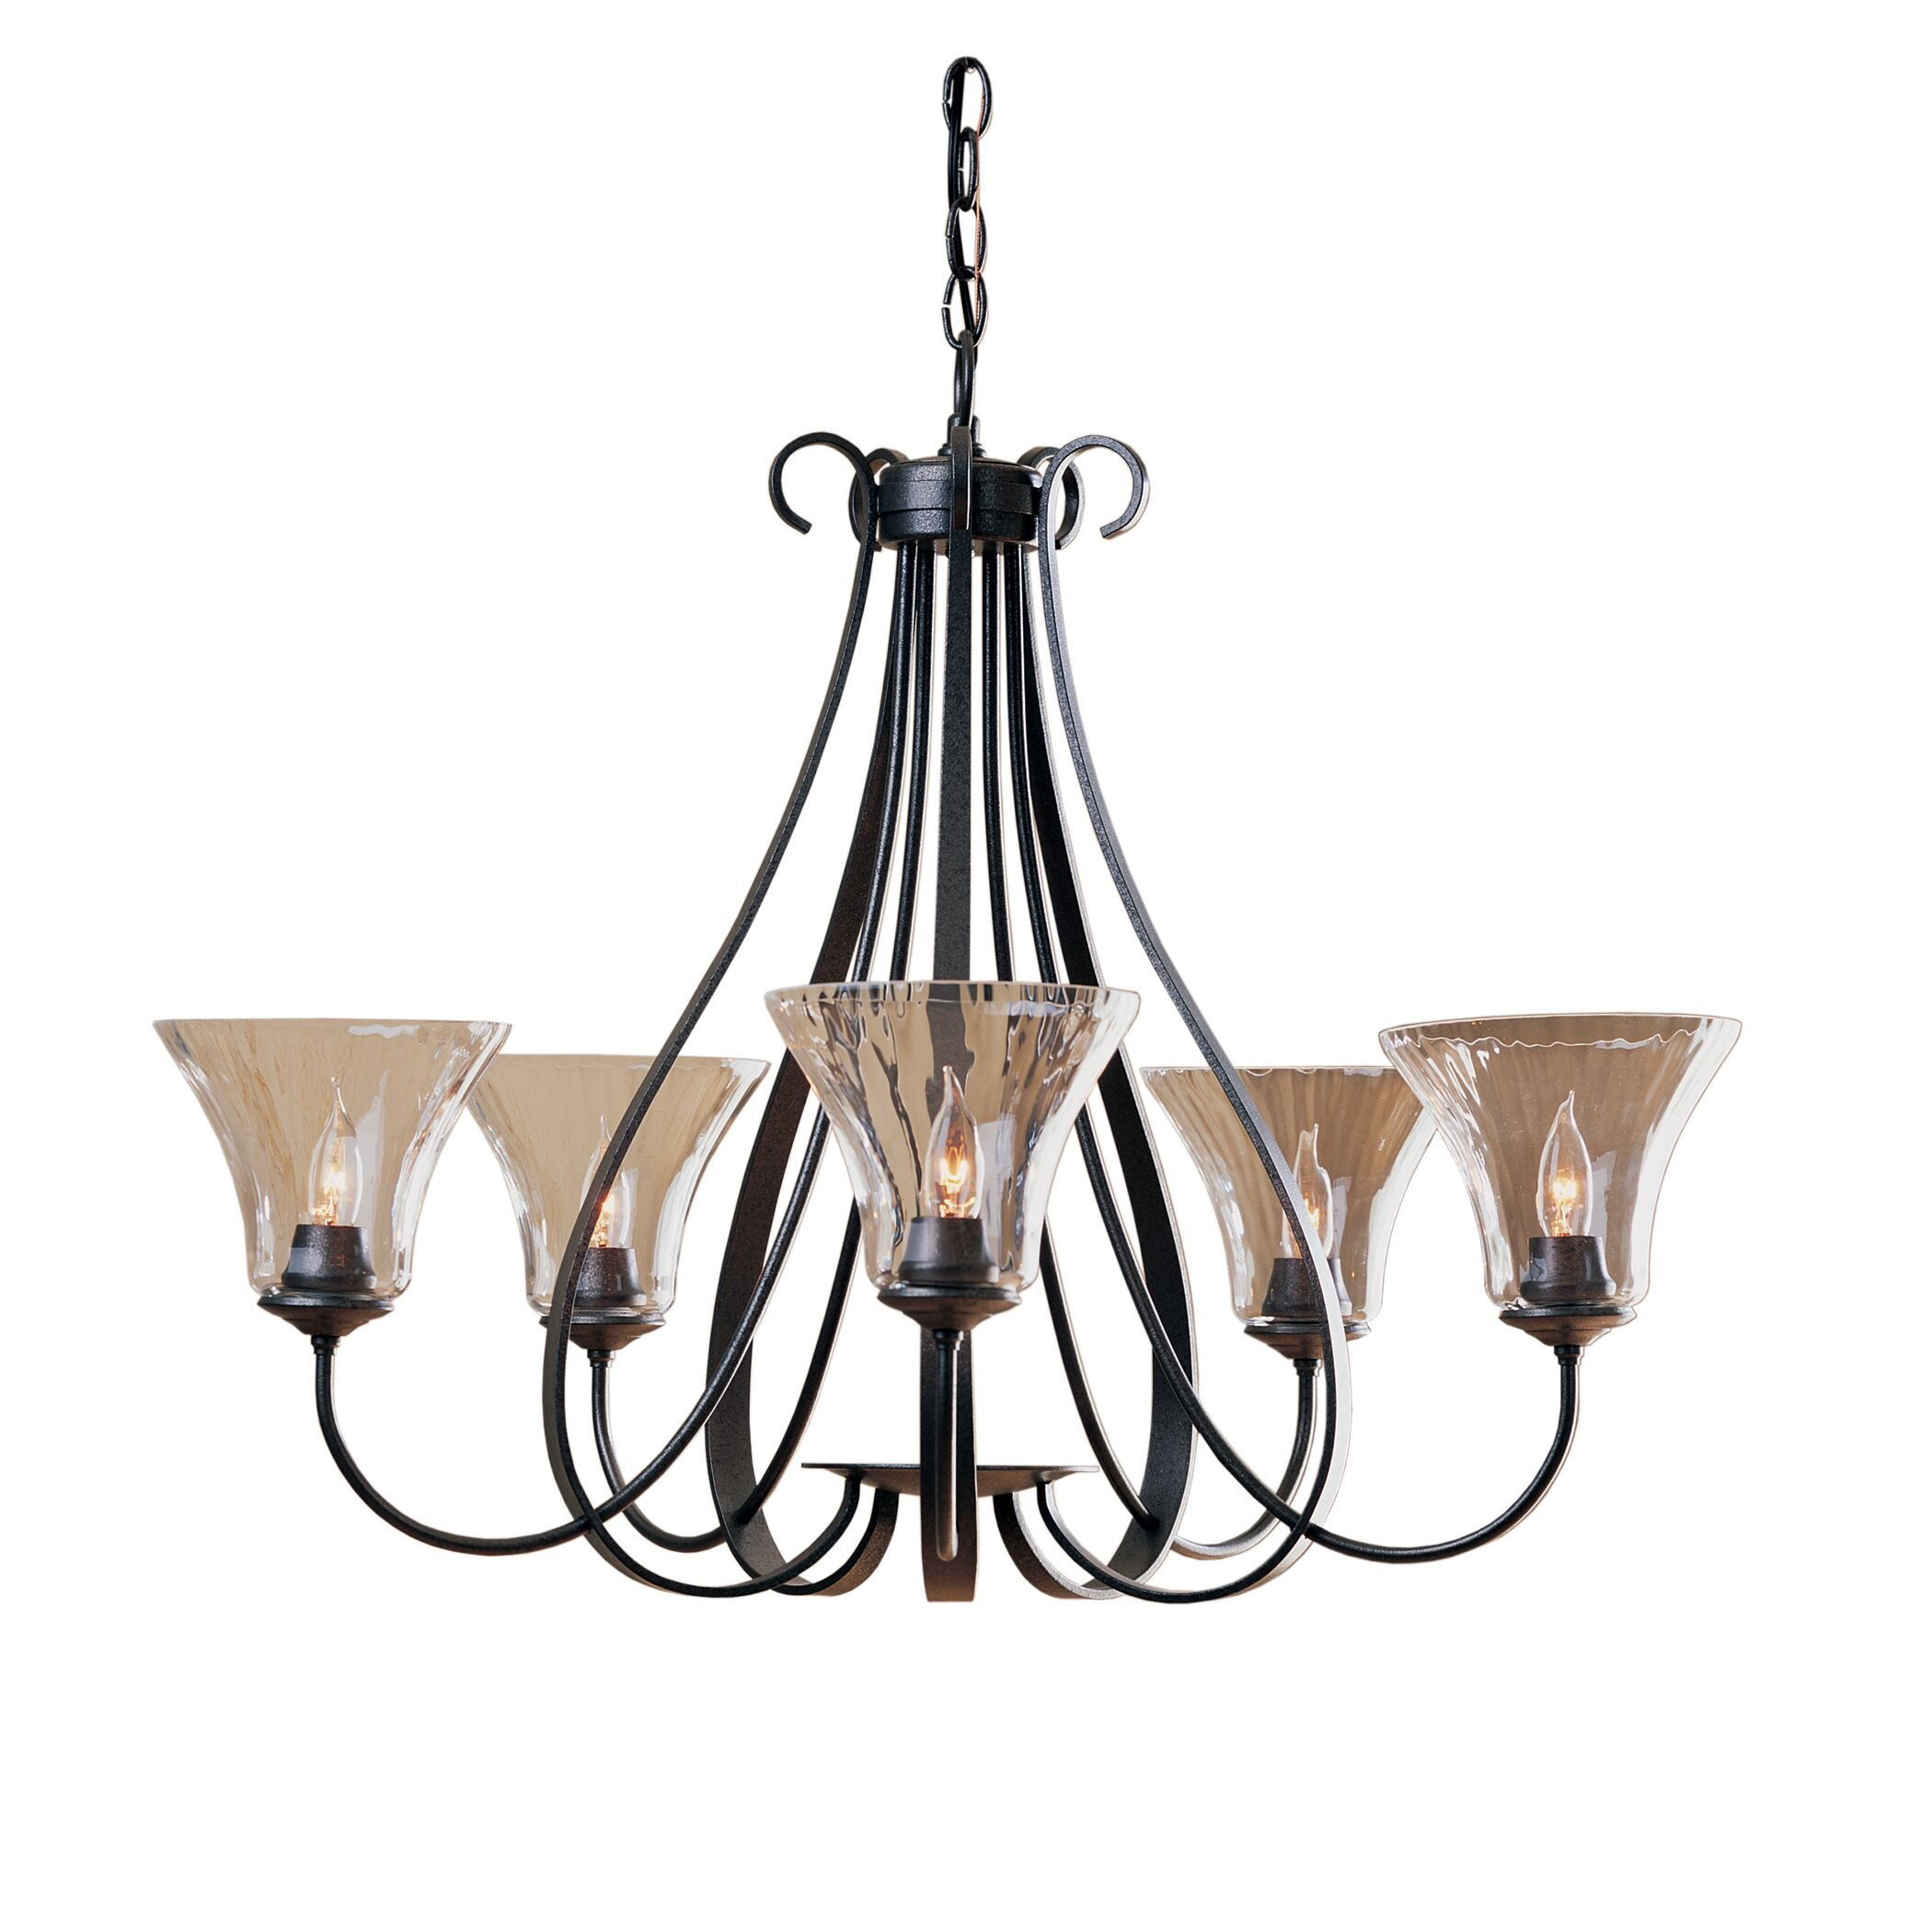 5-Light Shaded Chandelier Finish: Natural lron